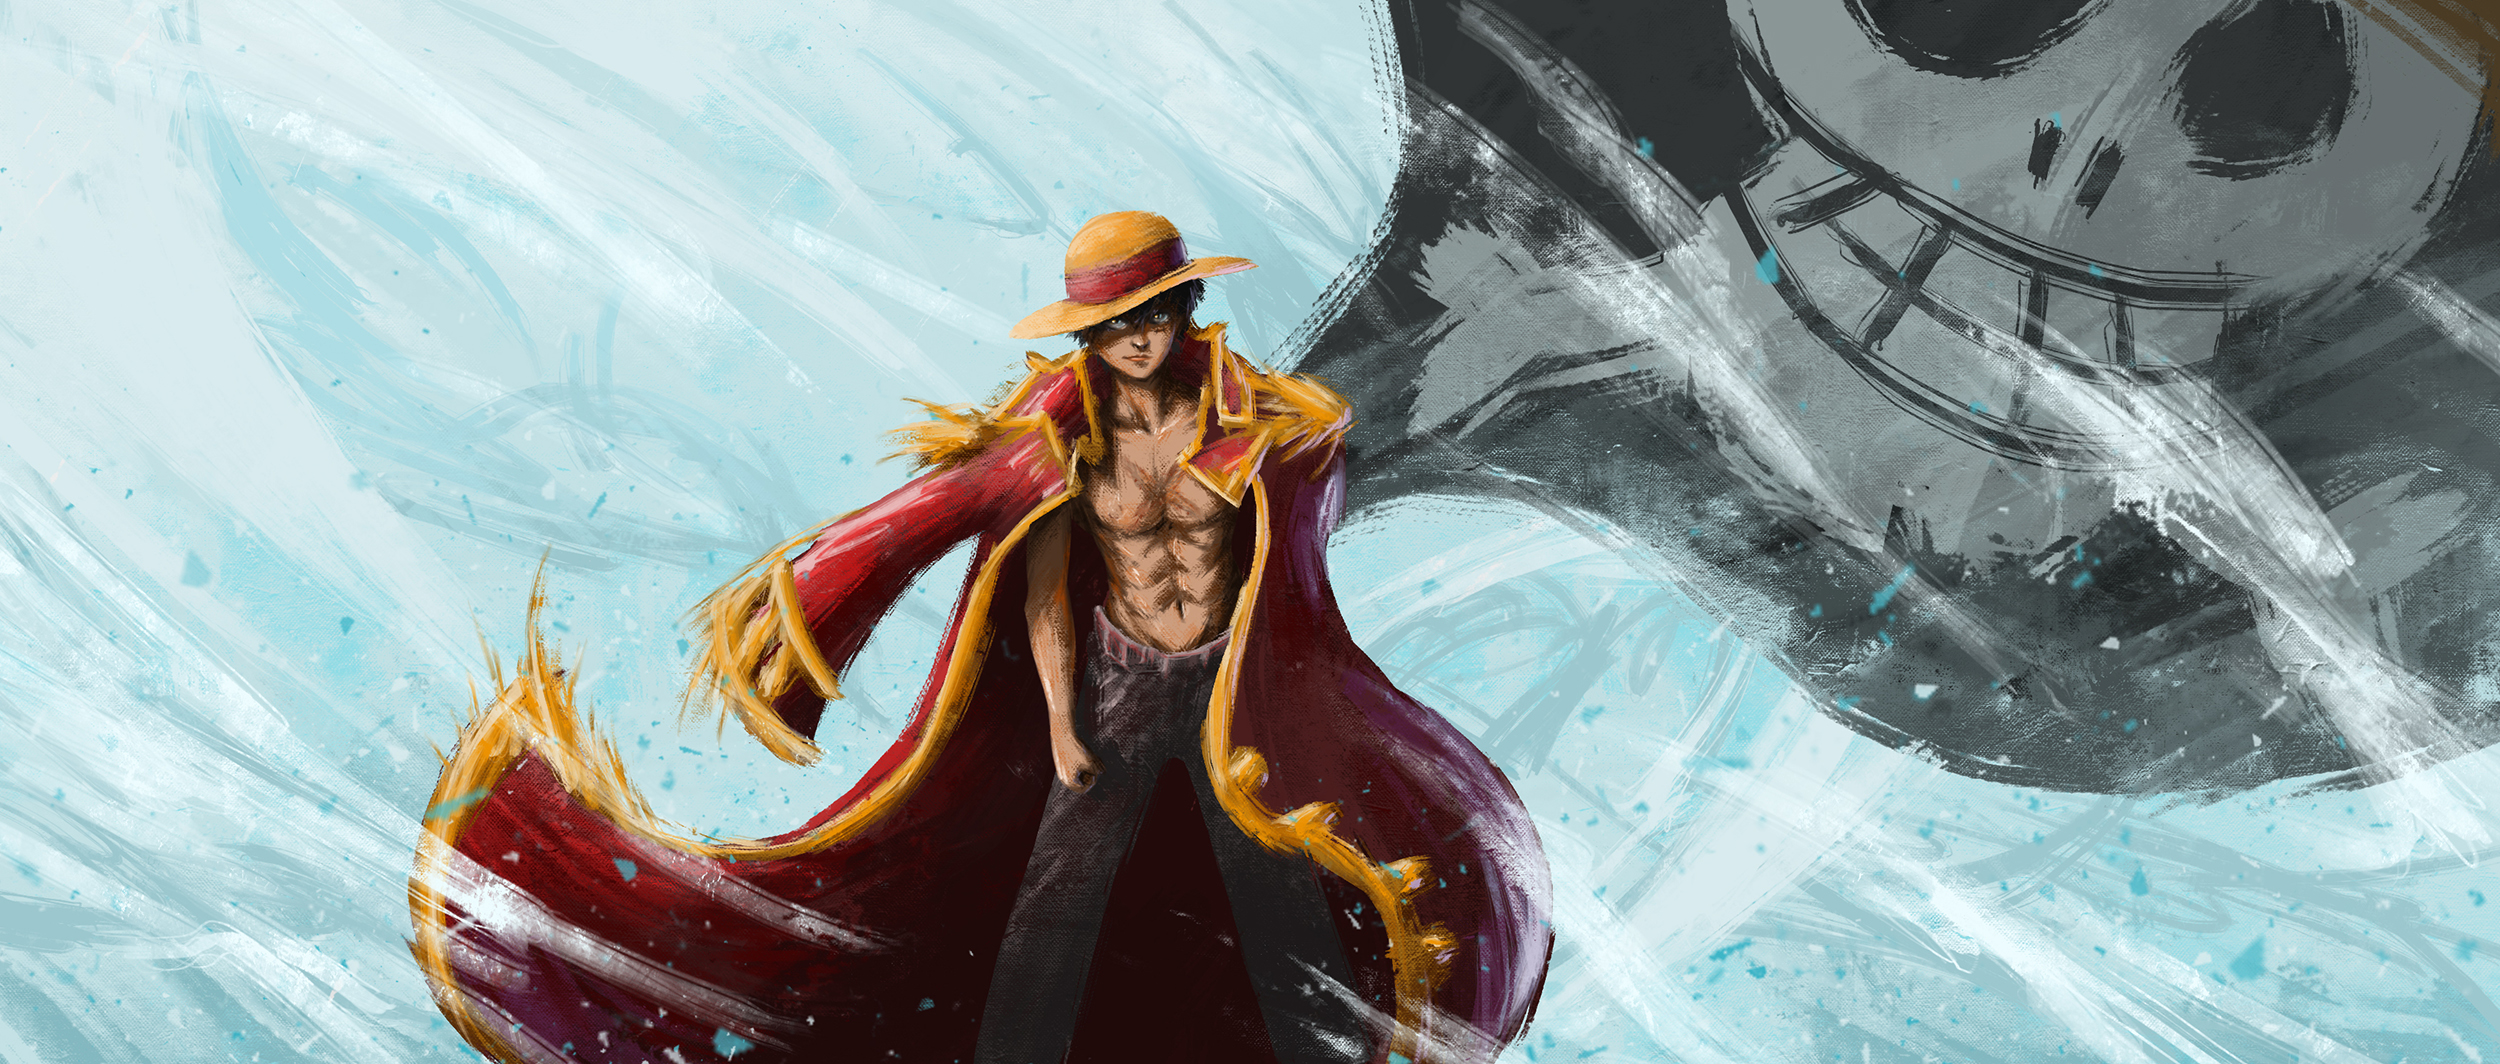 Monkey D. Luffy The Pirate King